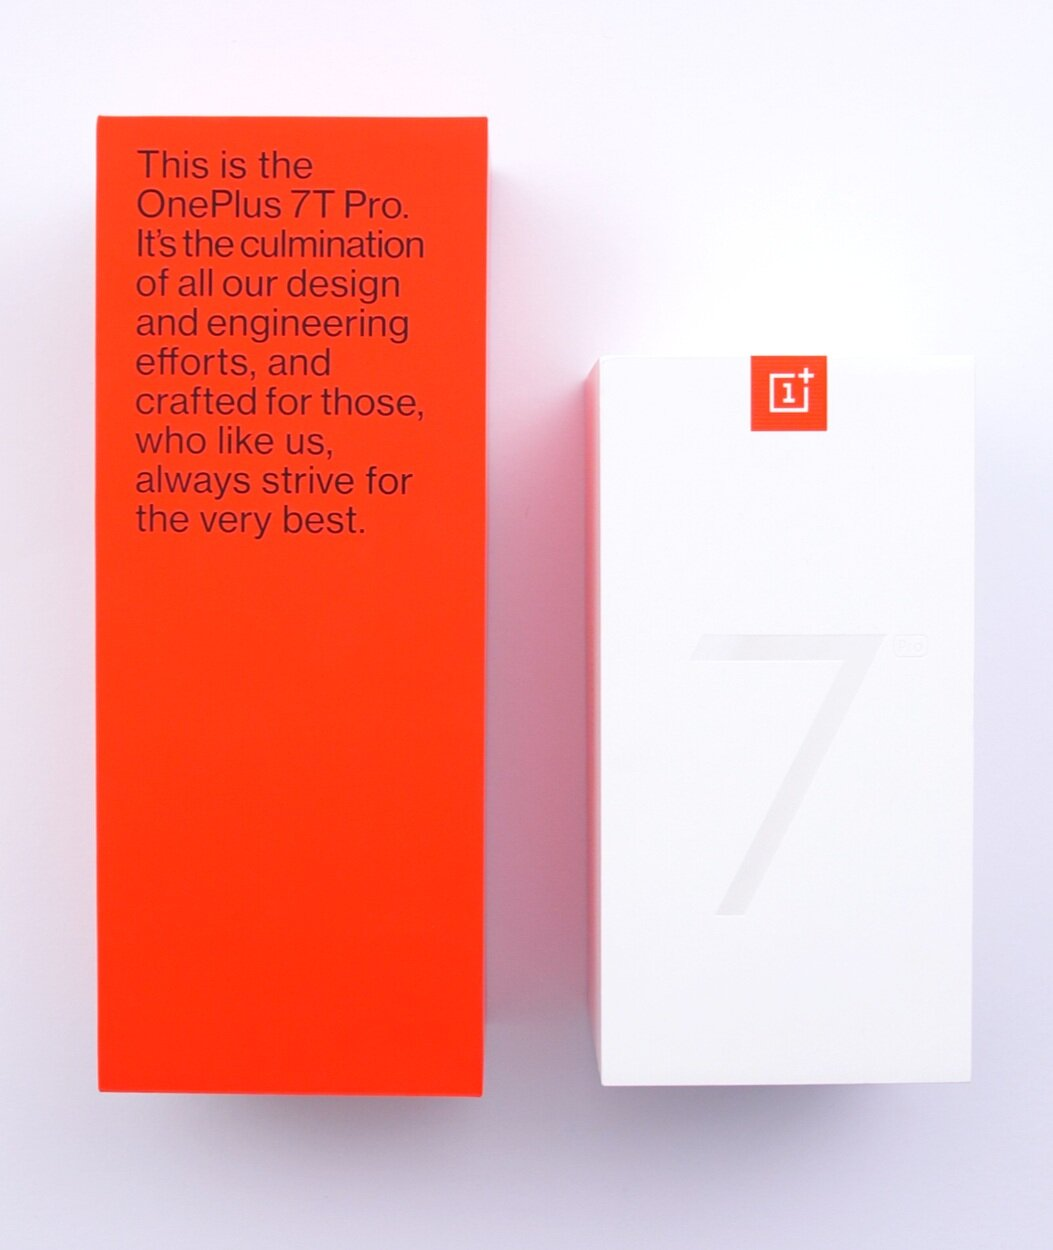 The size difference between the OnePlus 7T Pro Box (Left) and the 7 Pro (Right)